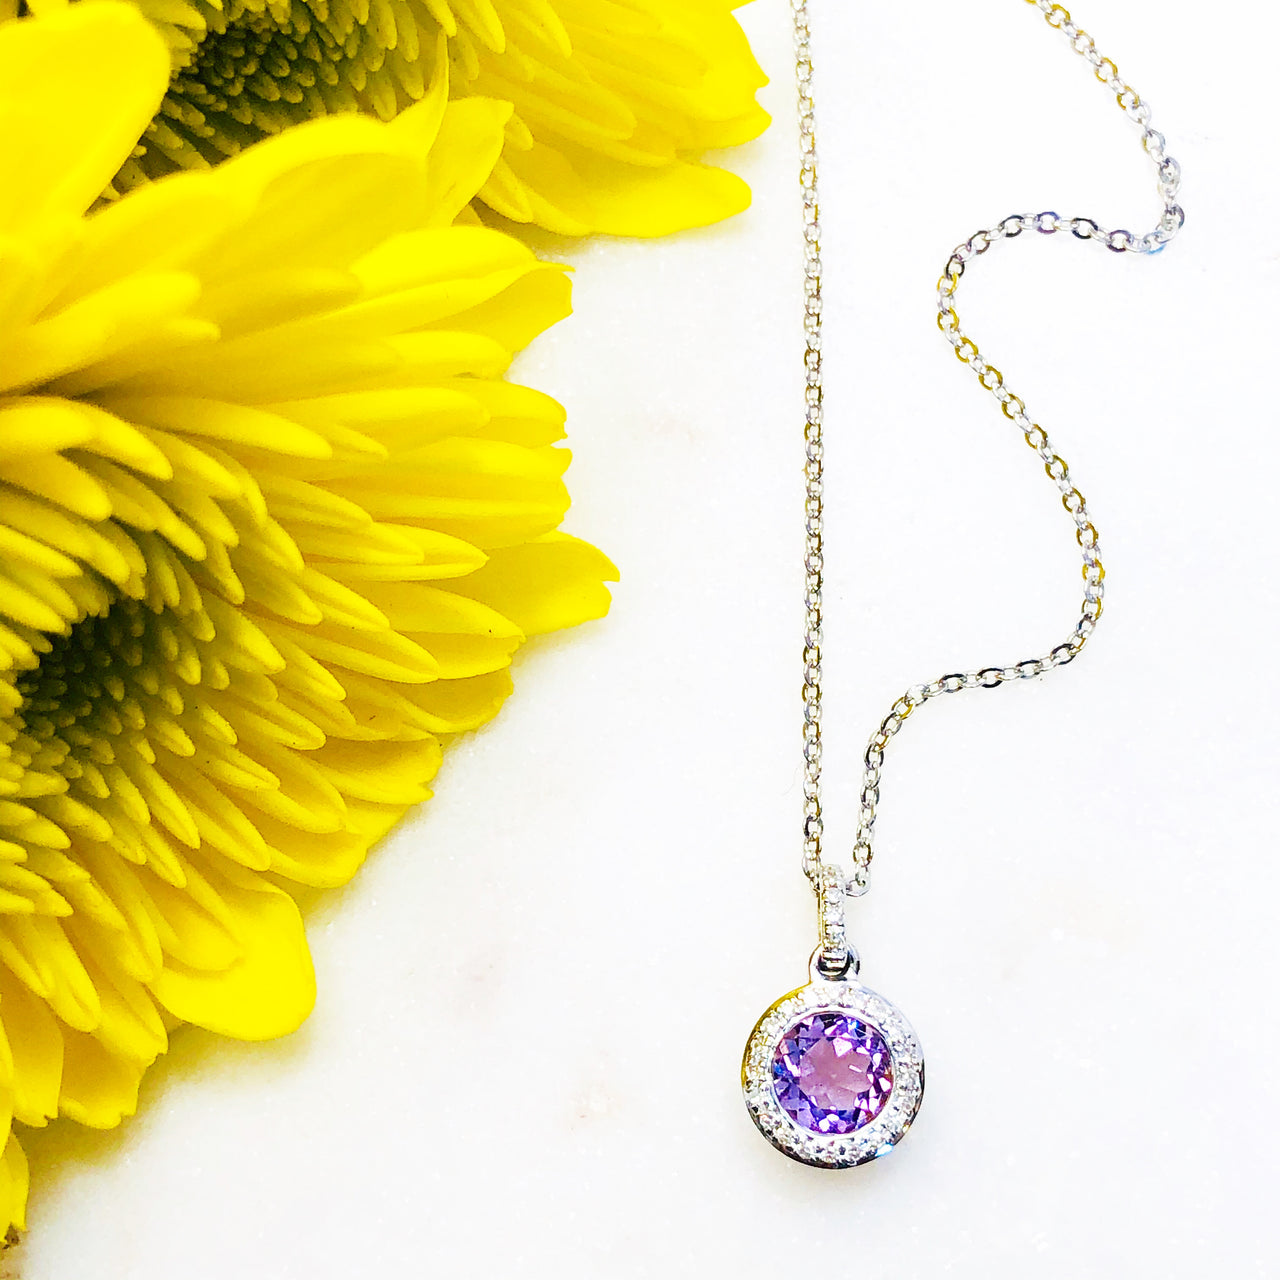 14K White Gold Amethyst and Diamond Necklace.